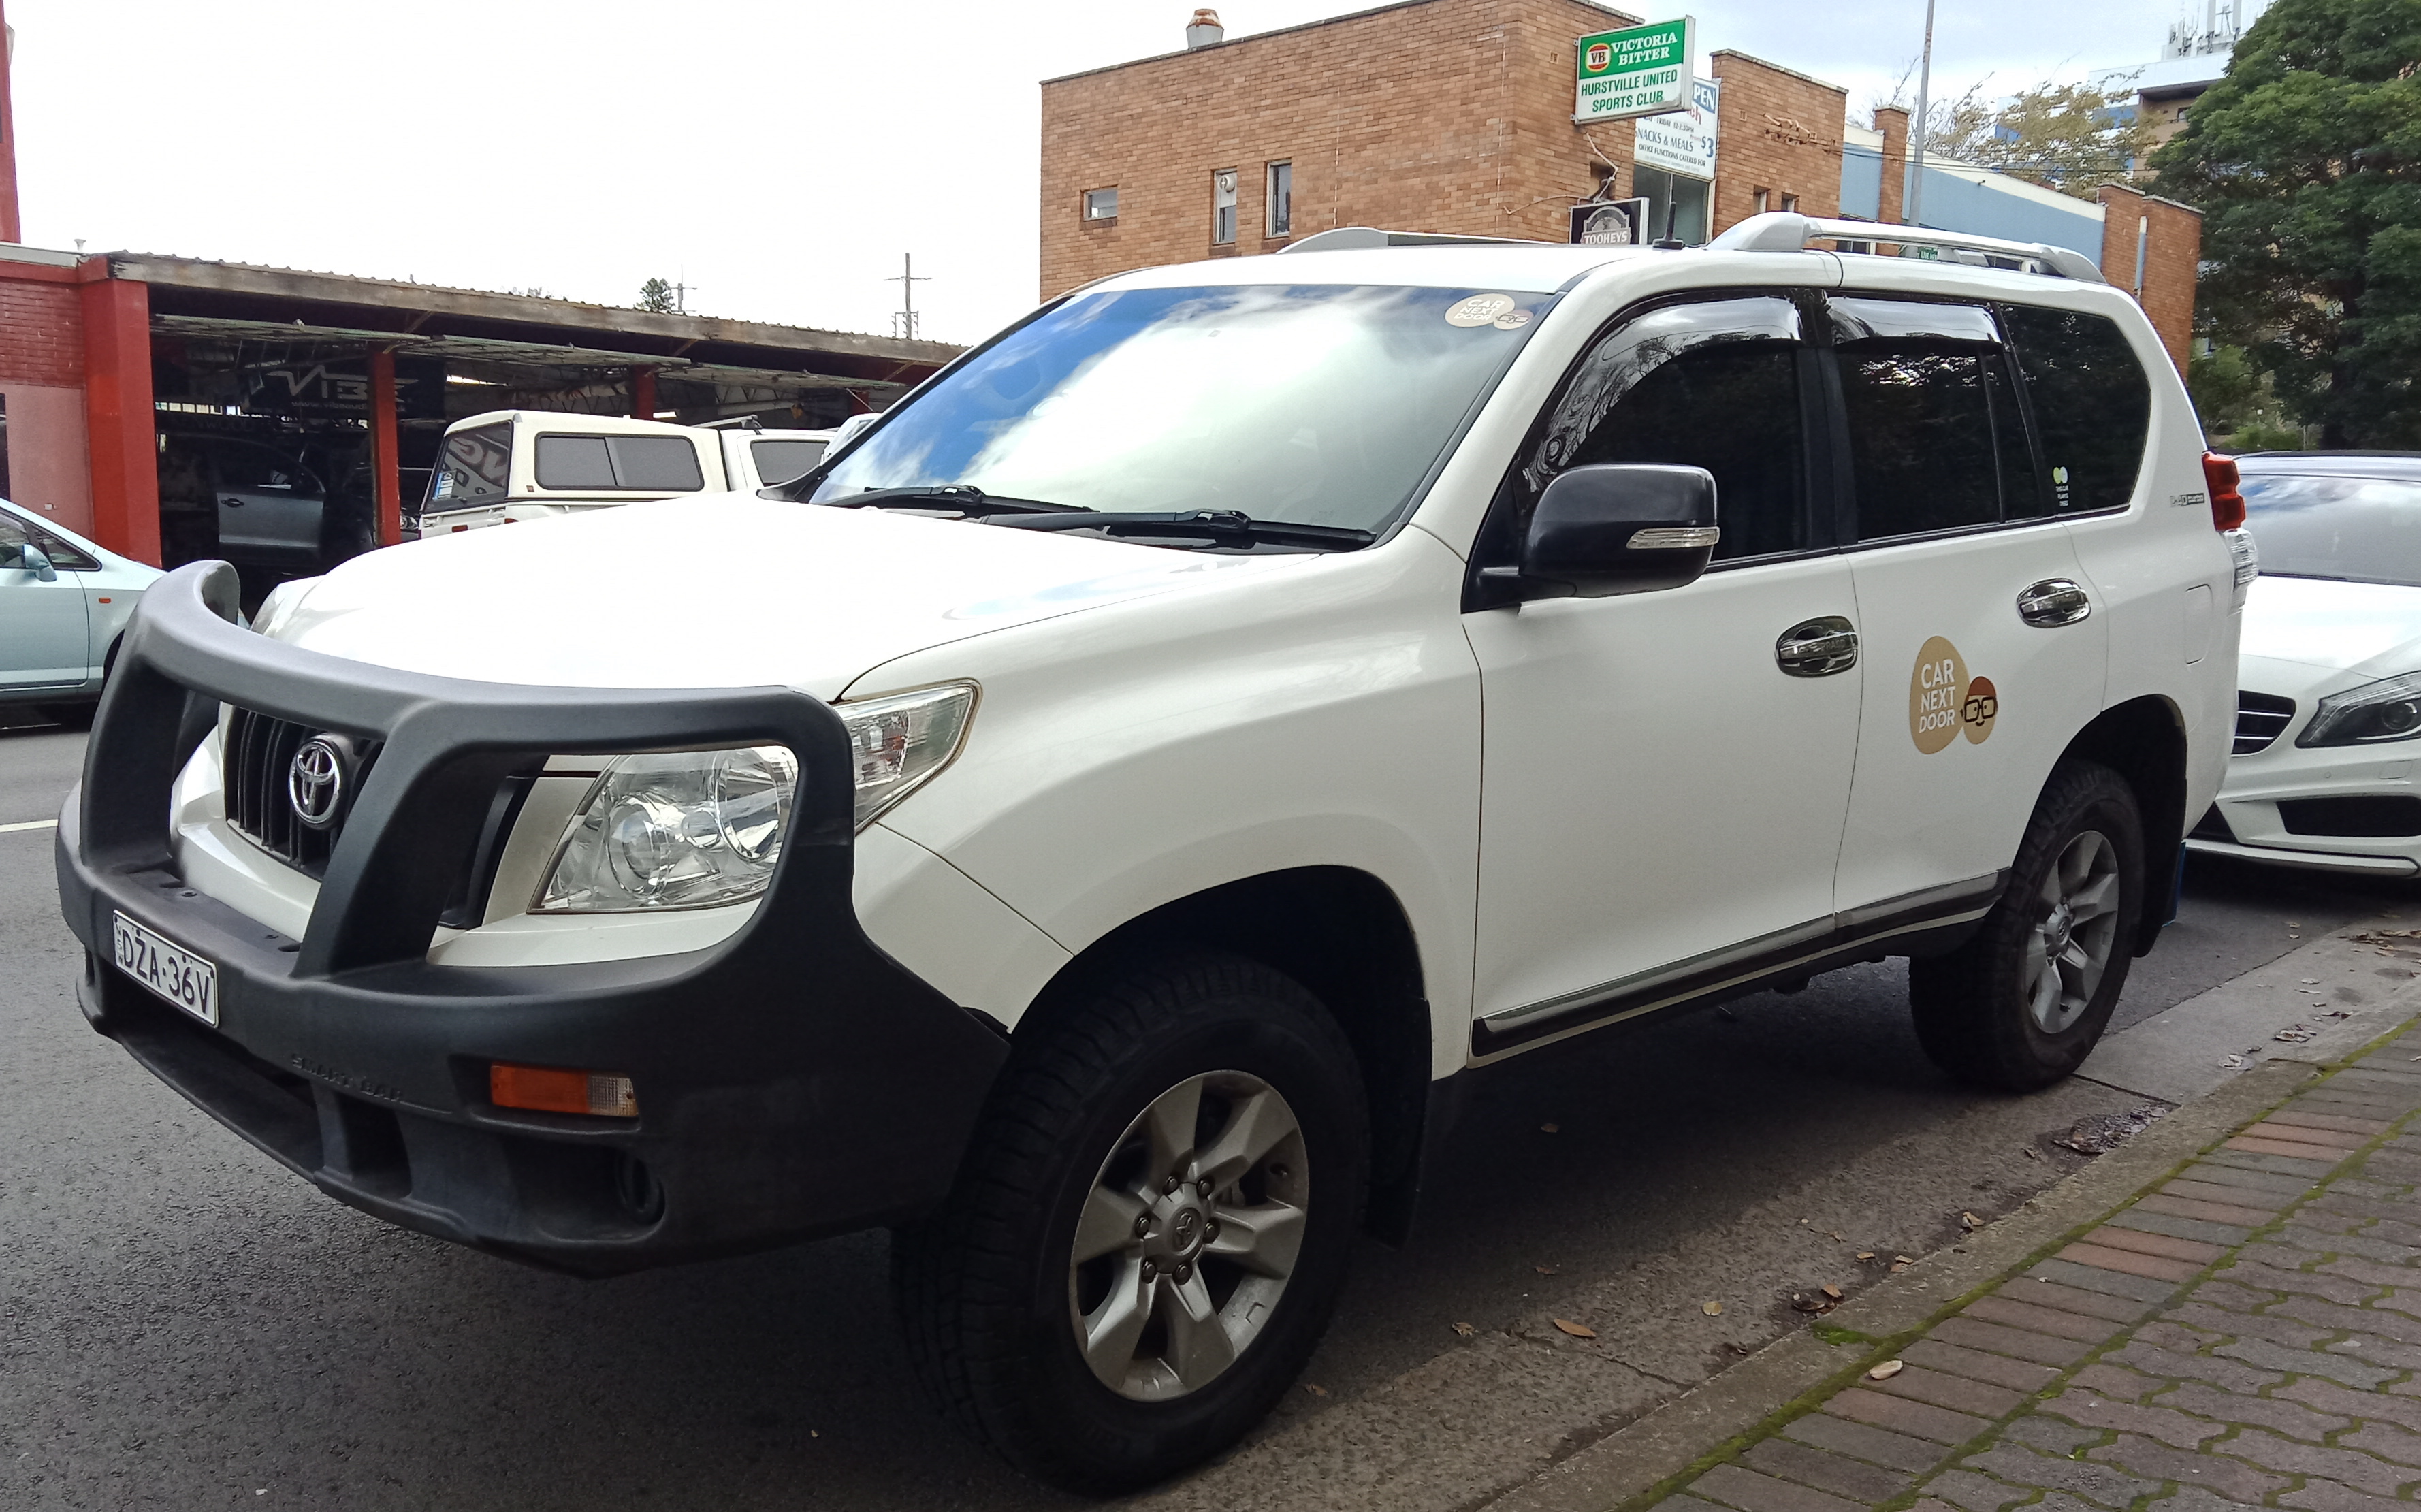 Picture of Tianyang's 2013 Toyota Prado